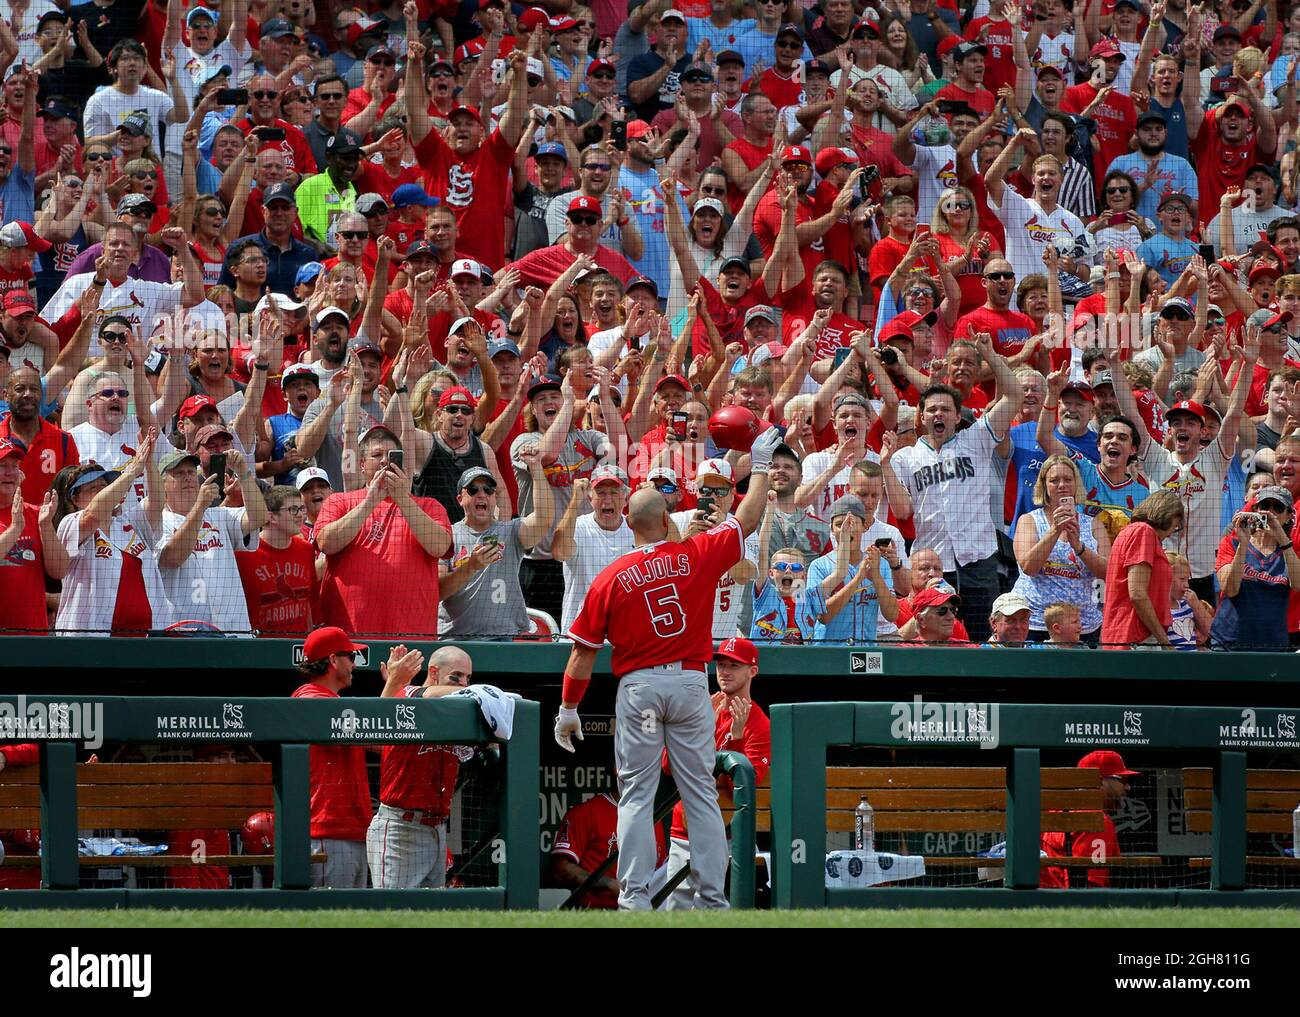 St. Louis, USA. 22nd June, 2019. The Los Angeles Angels' Albert Pujols acknowledges the crowd with a curtain call after hitting a solo home run against the St. Louis Cardinals at Busch Stadium in St. Louis, Missouri, on Saturday, June 22, 2019. (Photo by Christian Gooden/St. Louis Post-Dispatch/TNS/Sipa USA) Credit: Sipa USA/Alamy Live News Stock Photo